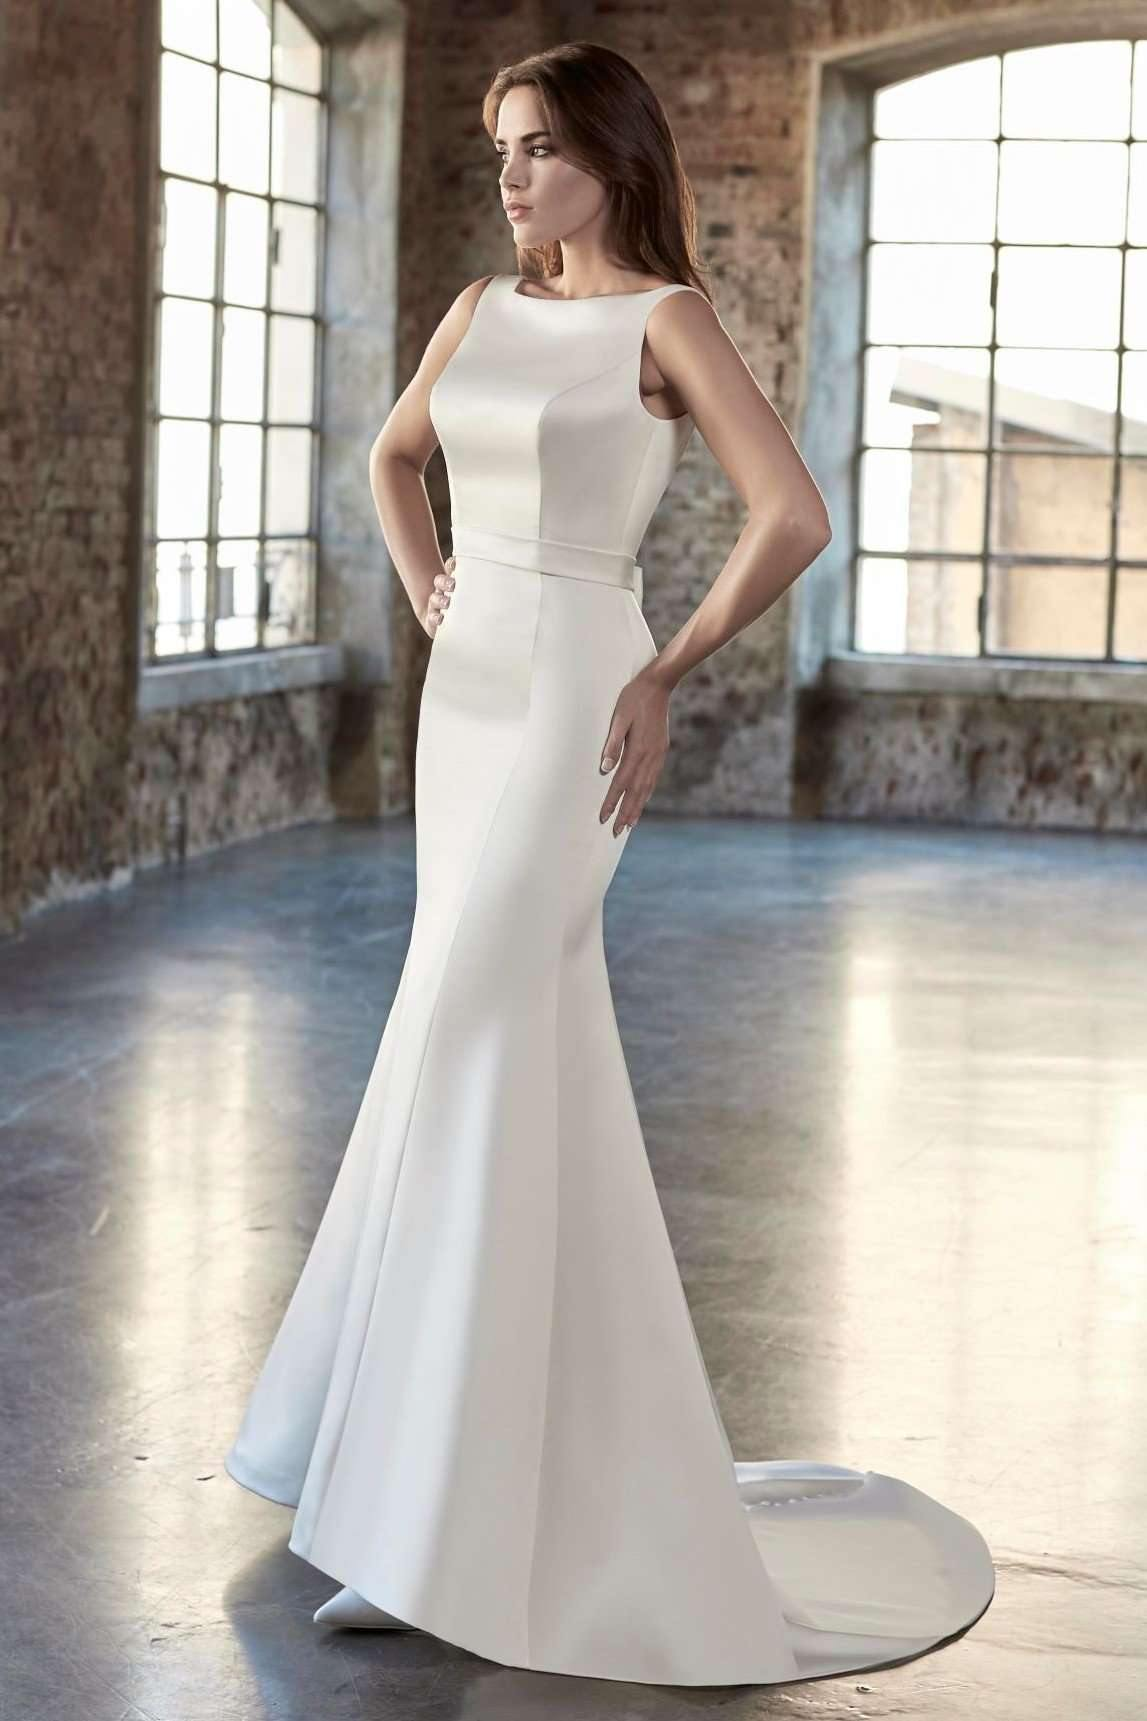 VENUS BRIDAL - Enya - Adore Bridal and Occasion Wear